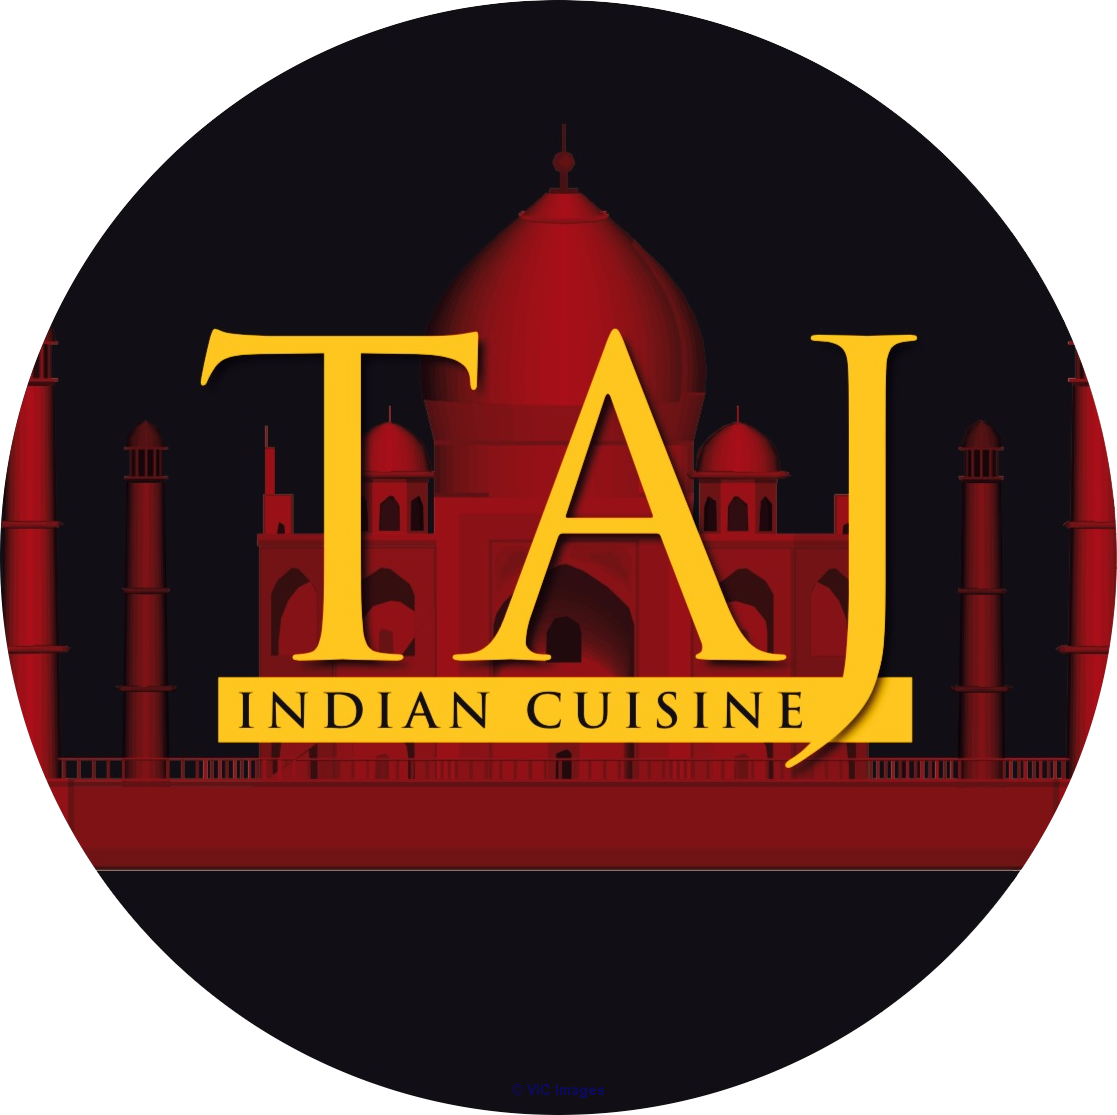 Indian Lunch Buffet - Taj Indian Cuisine Ottawa, Ontario, Canada Annonces Classées